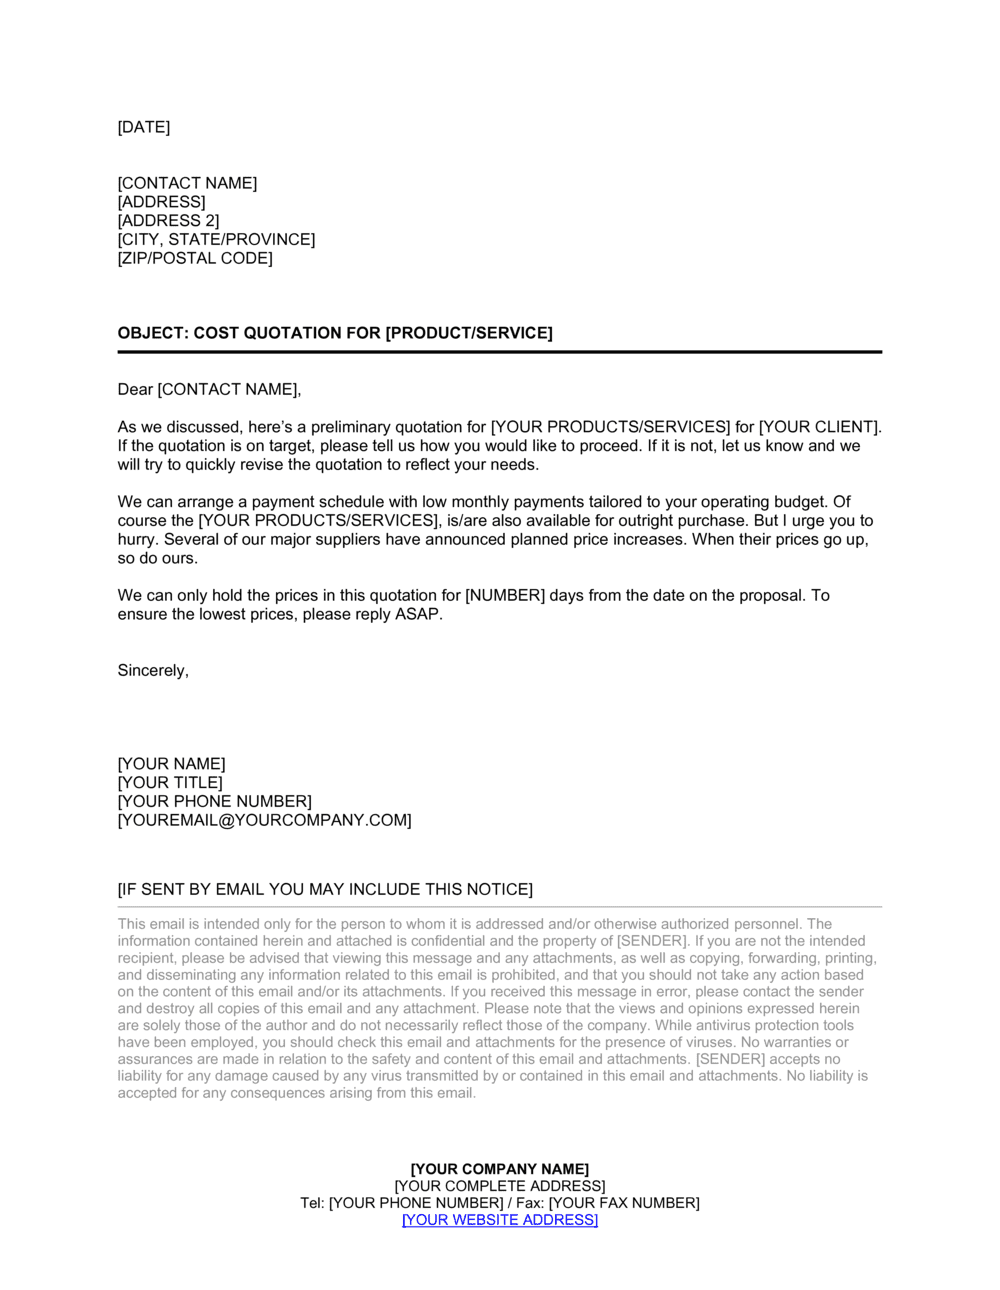 Business-in-a-Box's Cover Letter for a Cost Quotation Template